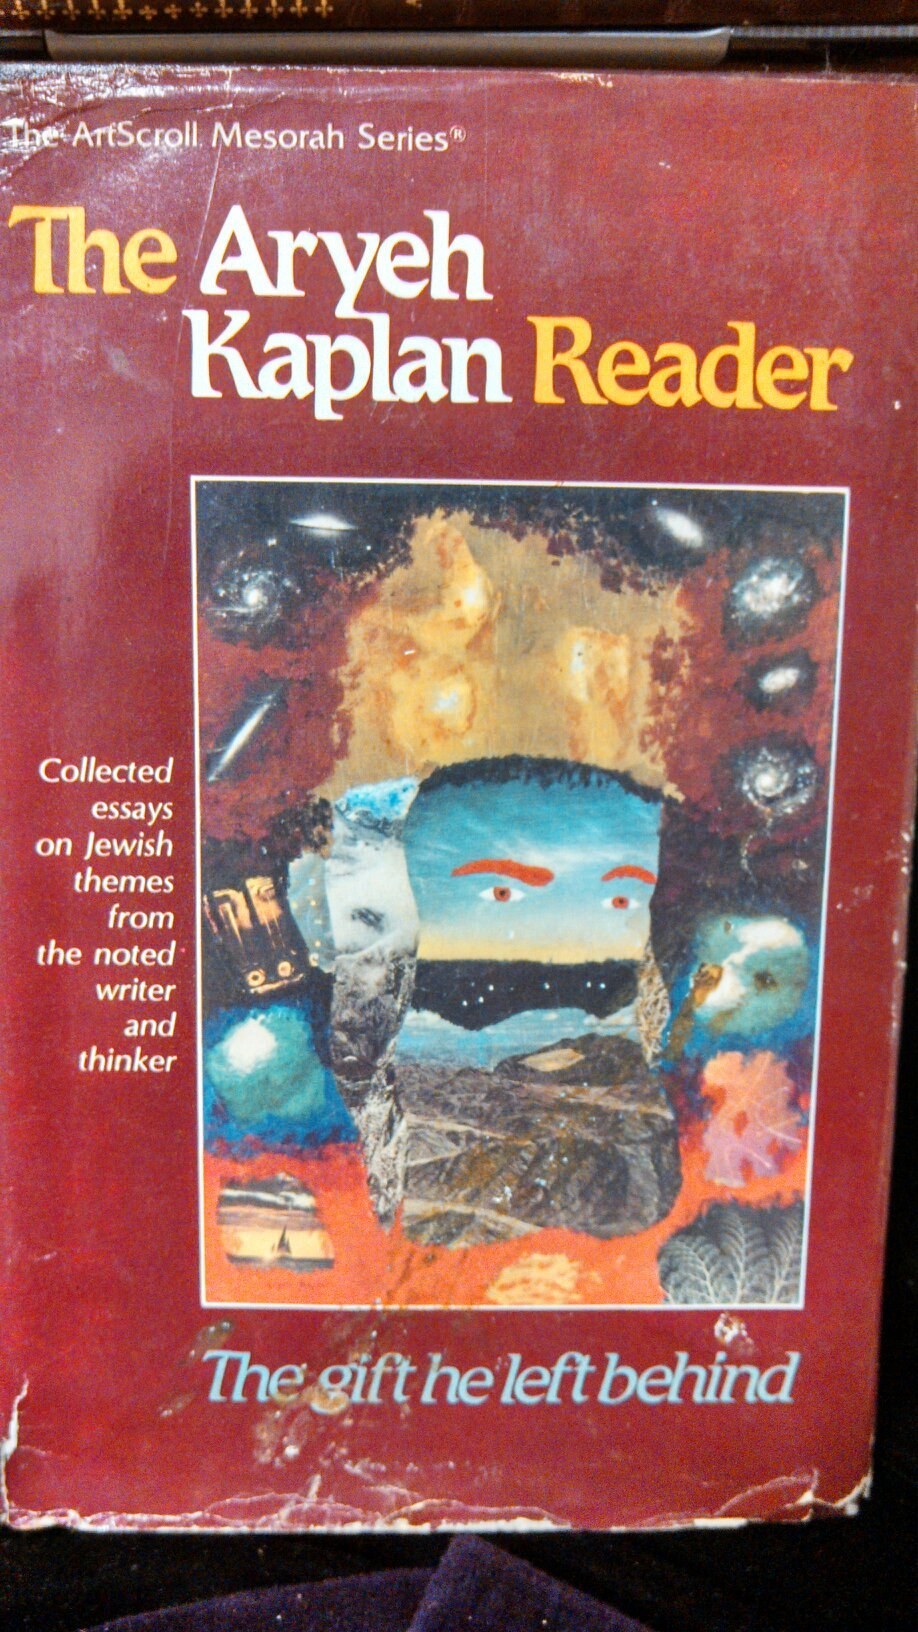 the aryeh kaplan reader the gift he left behind collected the aryeh kaplan reader the gift he left behind collected essays on jewish themes from the noted writer and thinker artscroll mesorah series aryeh